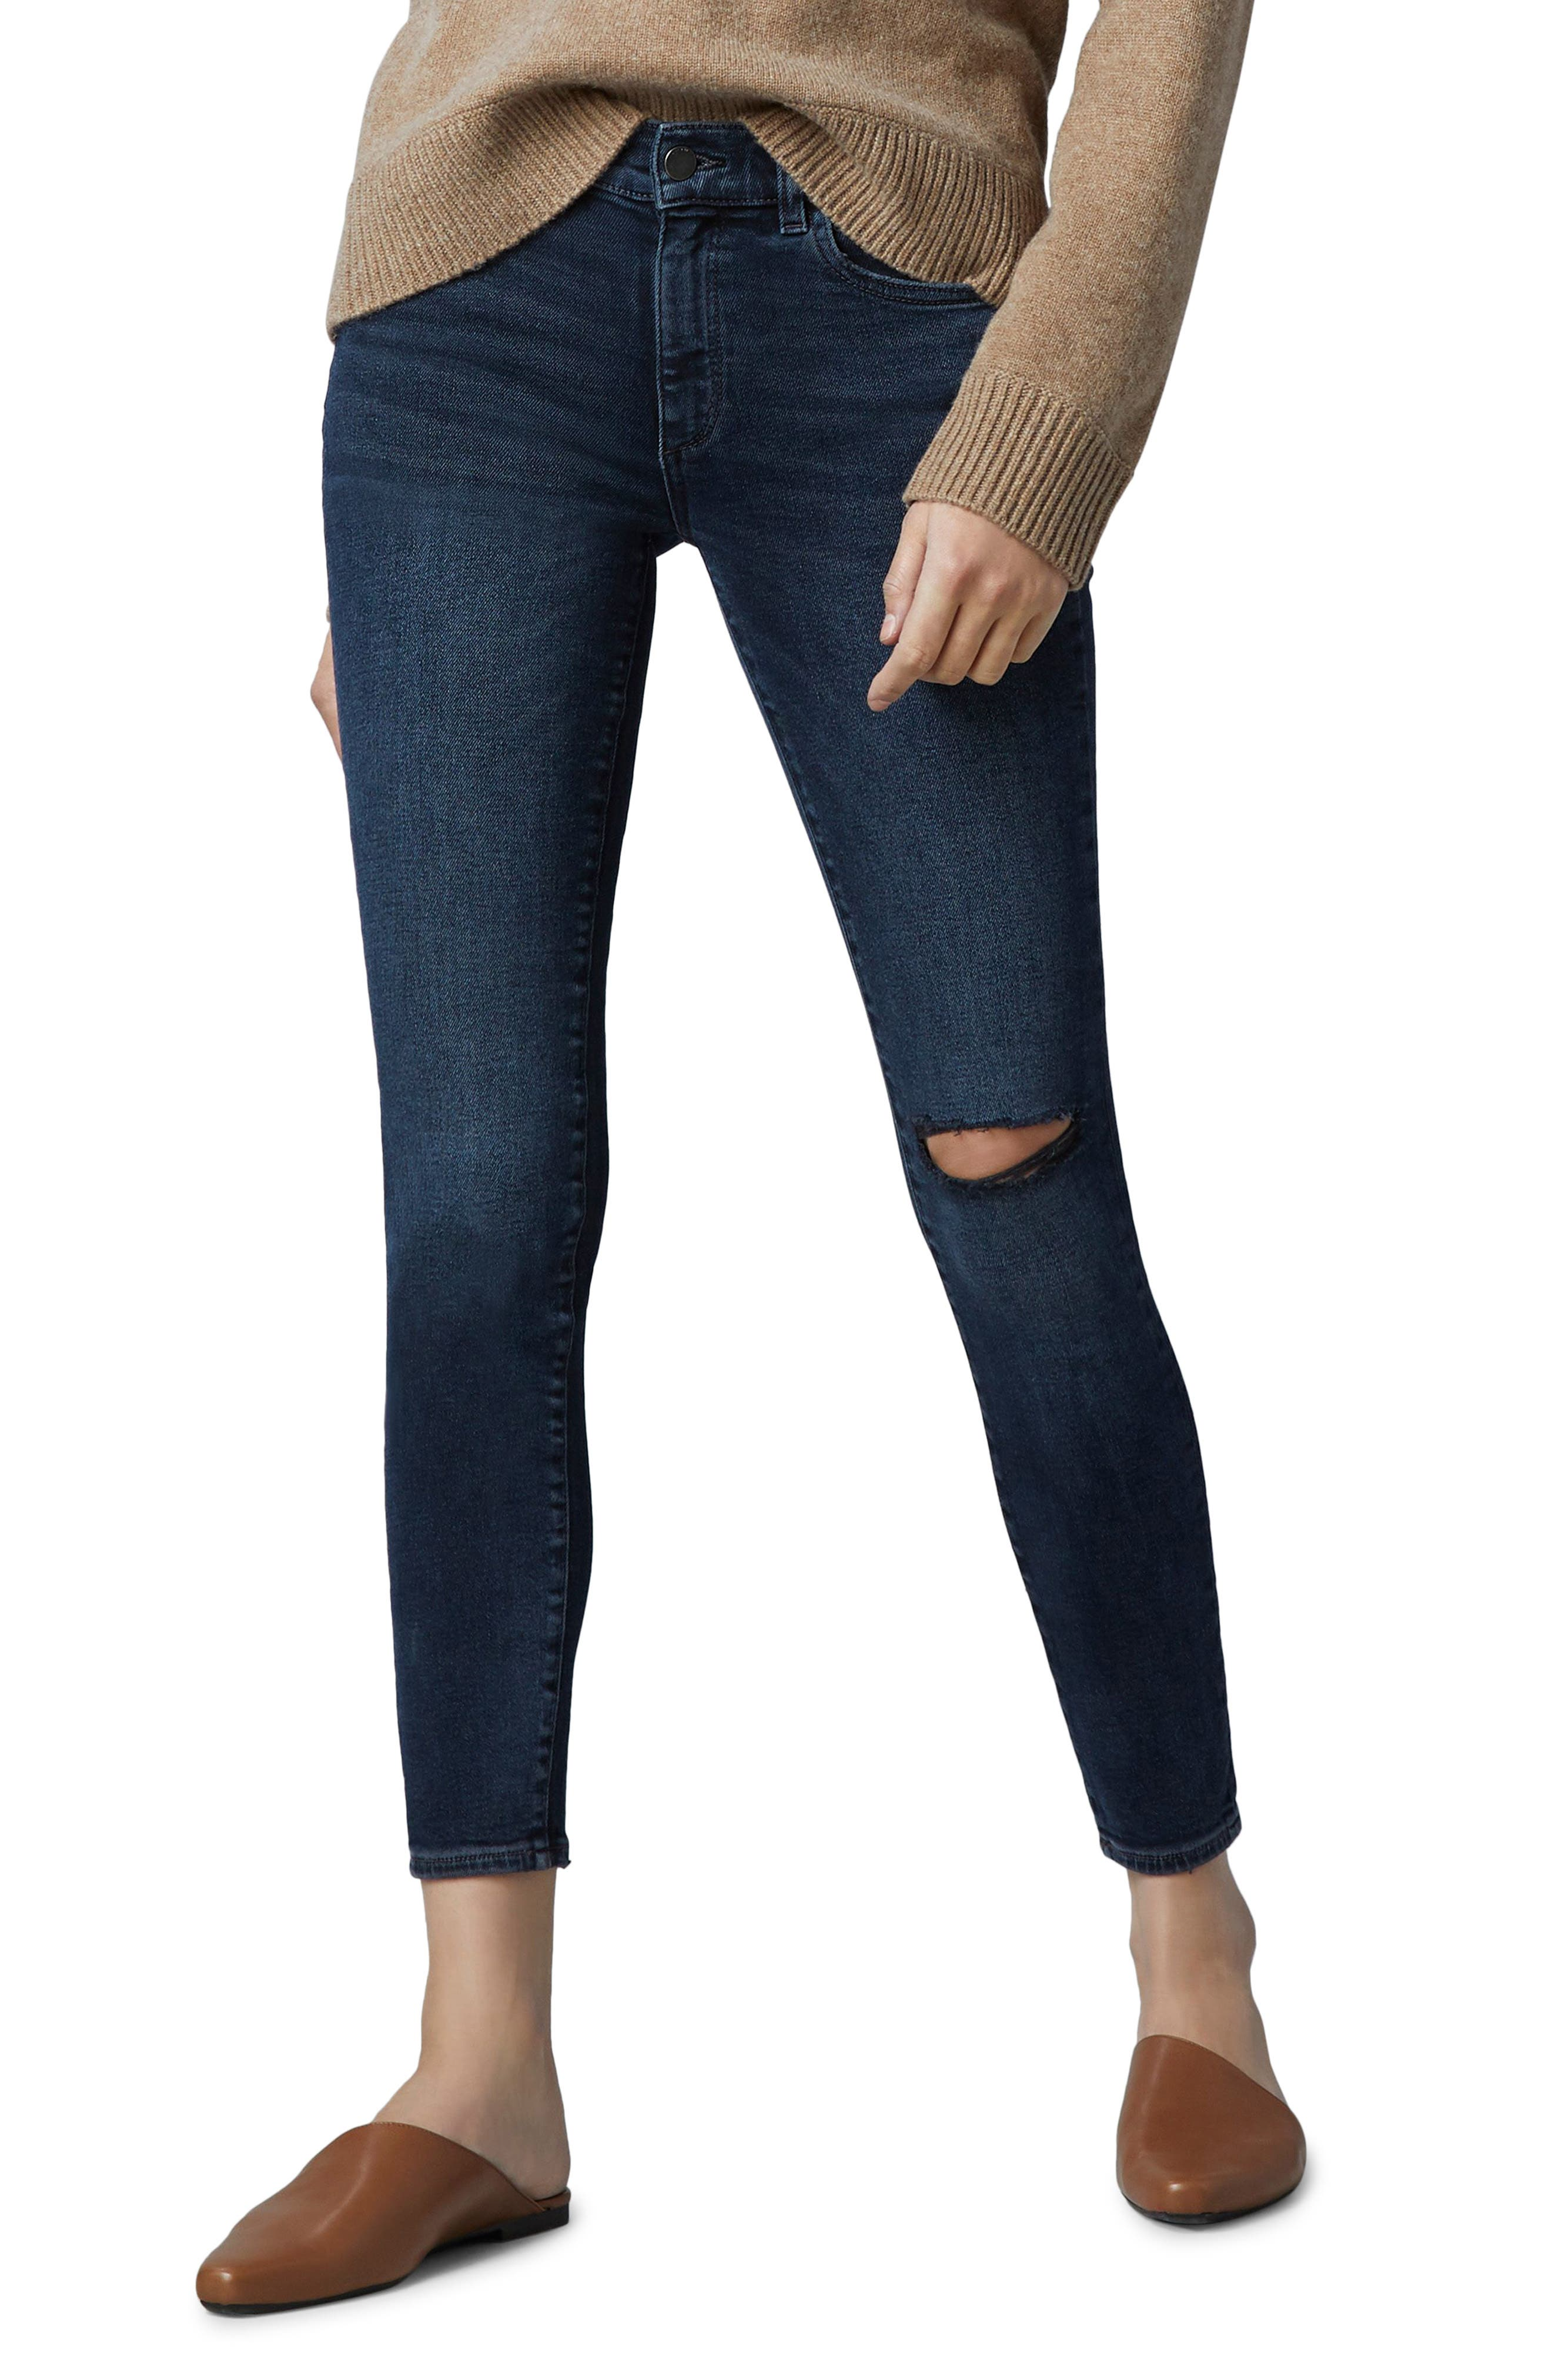 1961 Florence Instasculpt Mid Rise Ankle Skinny Jeans